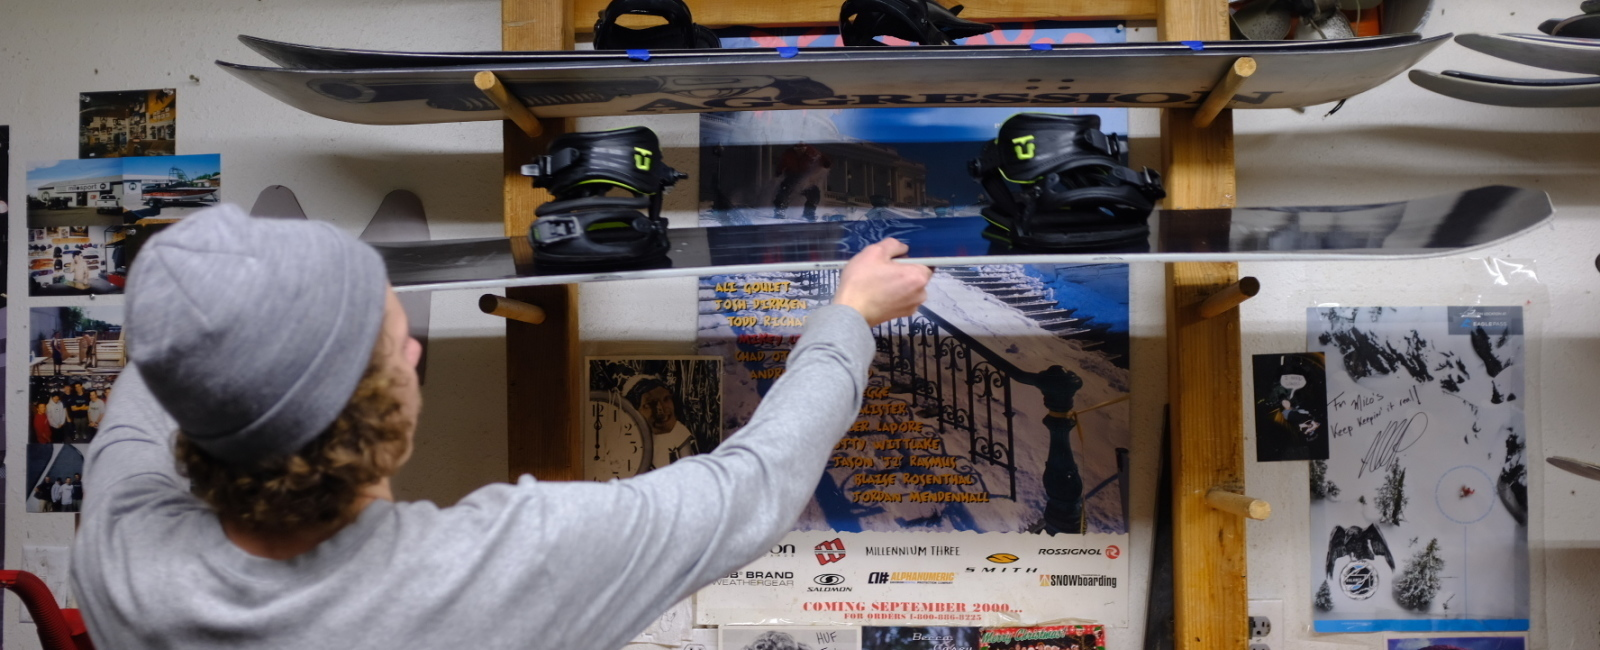 Tips for Prepping your Snowboard Gear